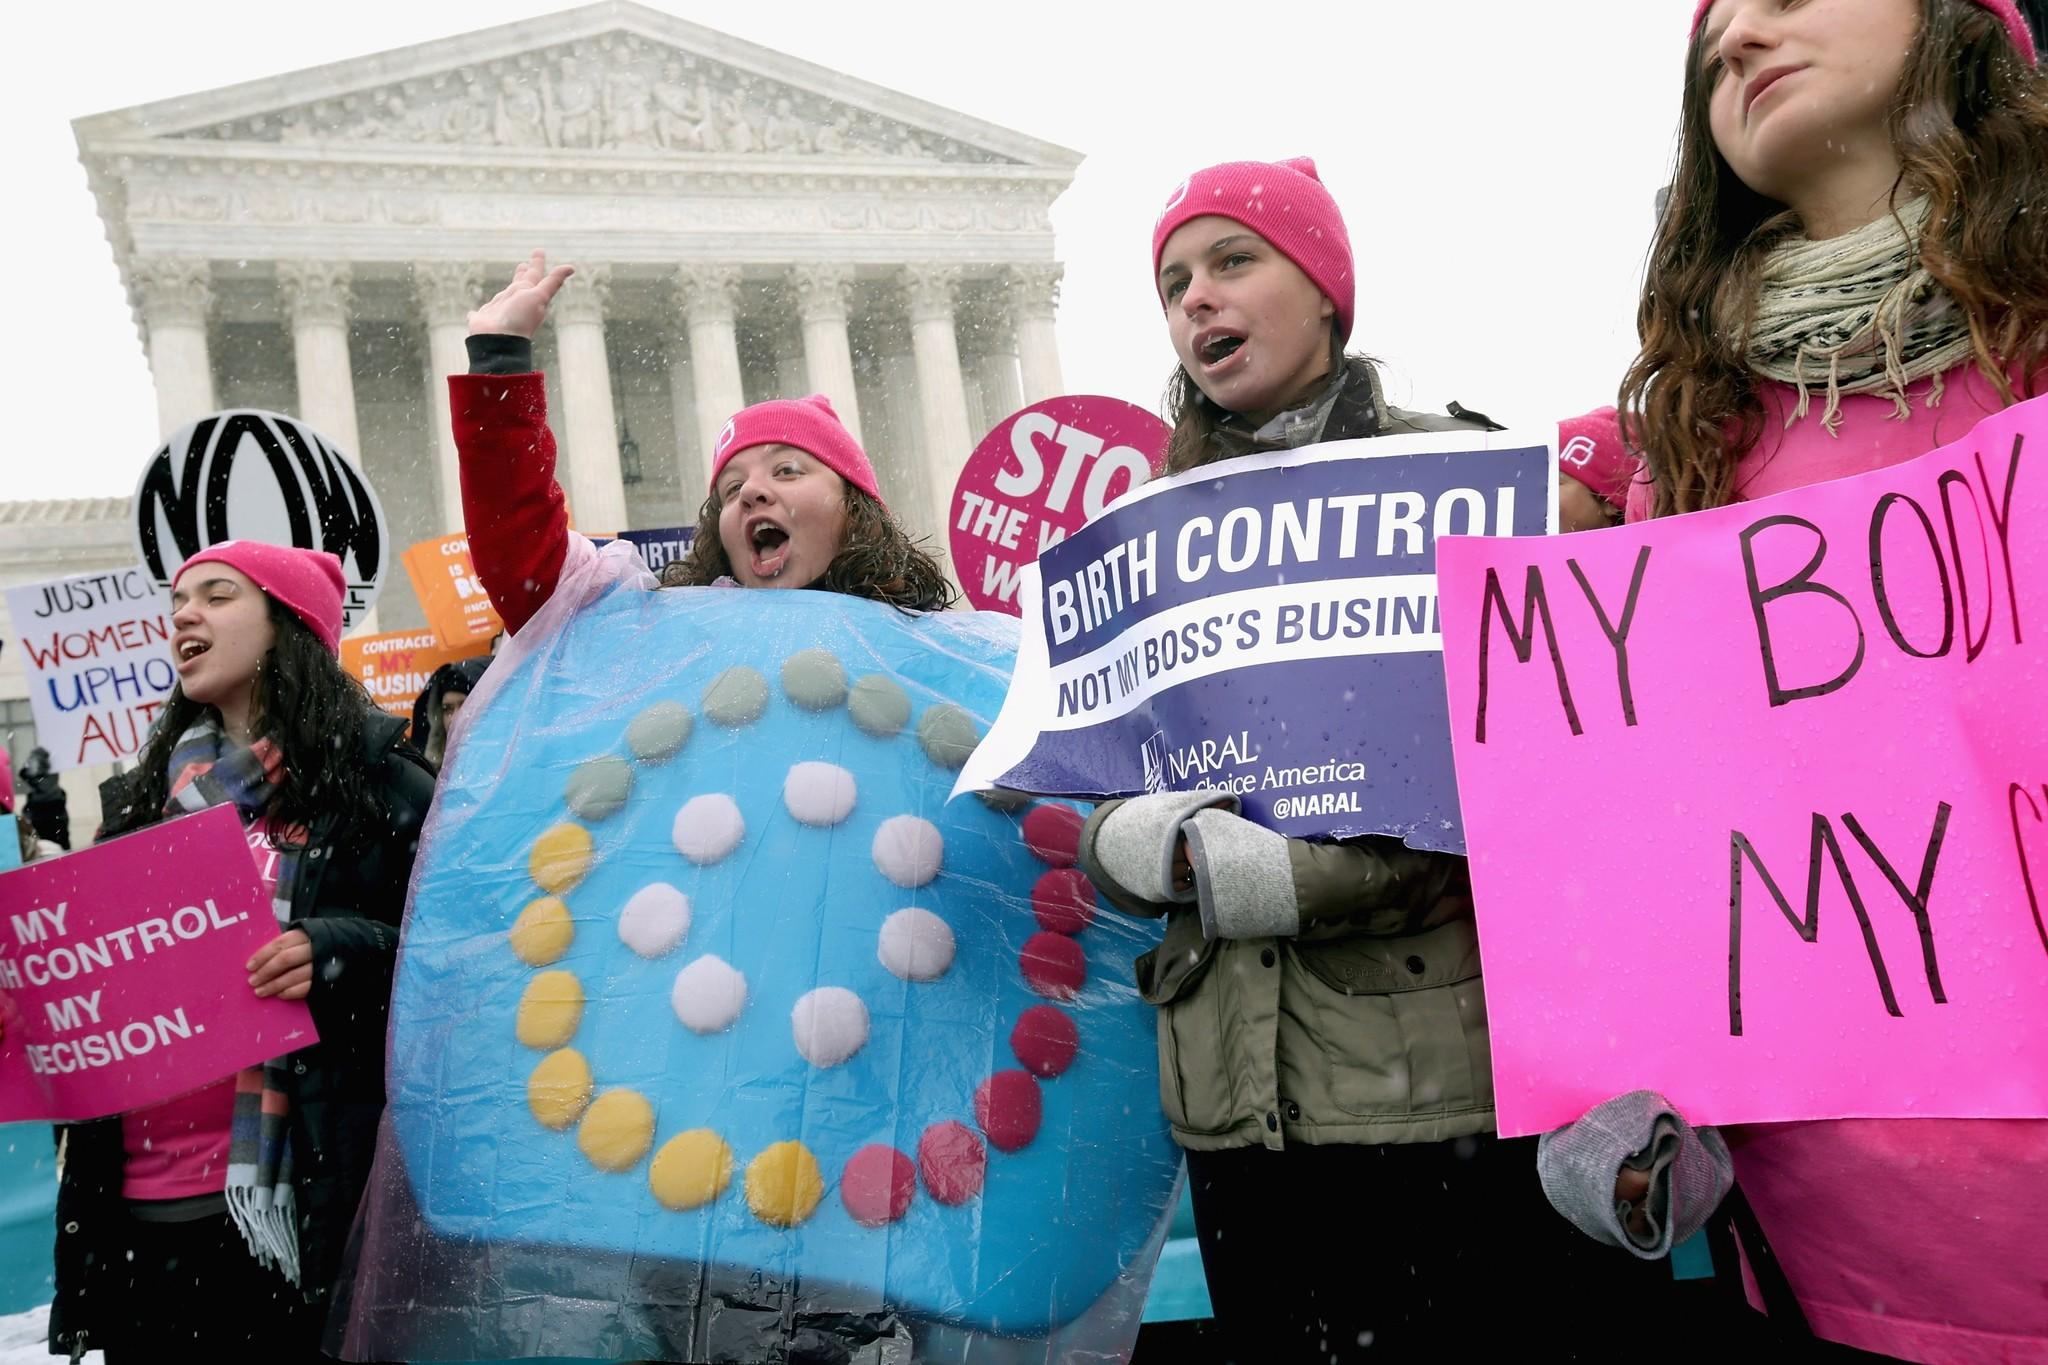 Demonstrators rally outside of the U.S. Supreme Court during oral arguments in Sebelius vs. Hobby Lobby on Tuesday in Washington.